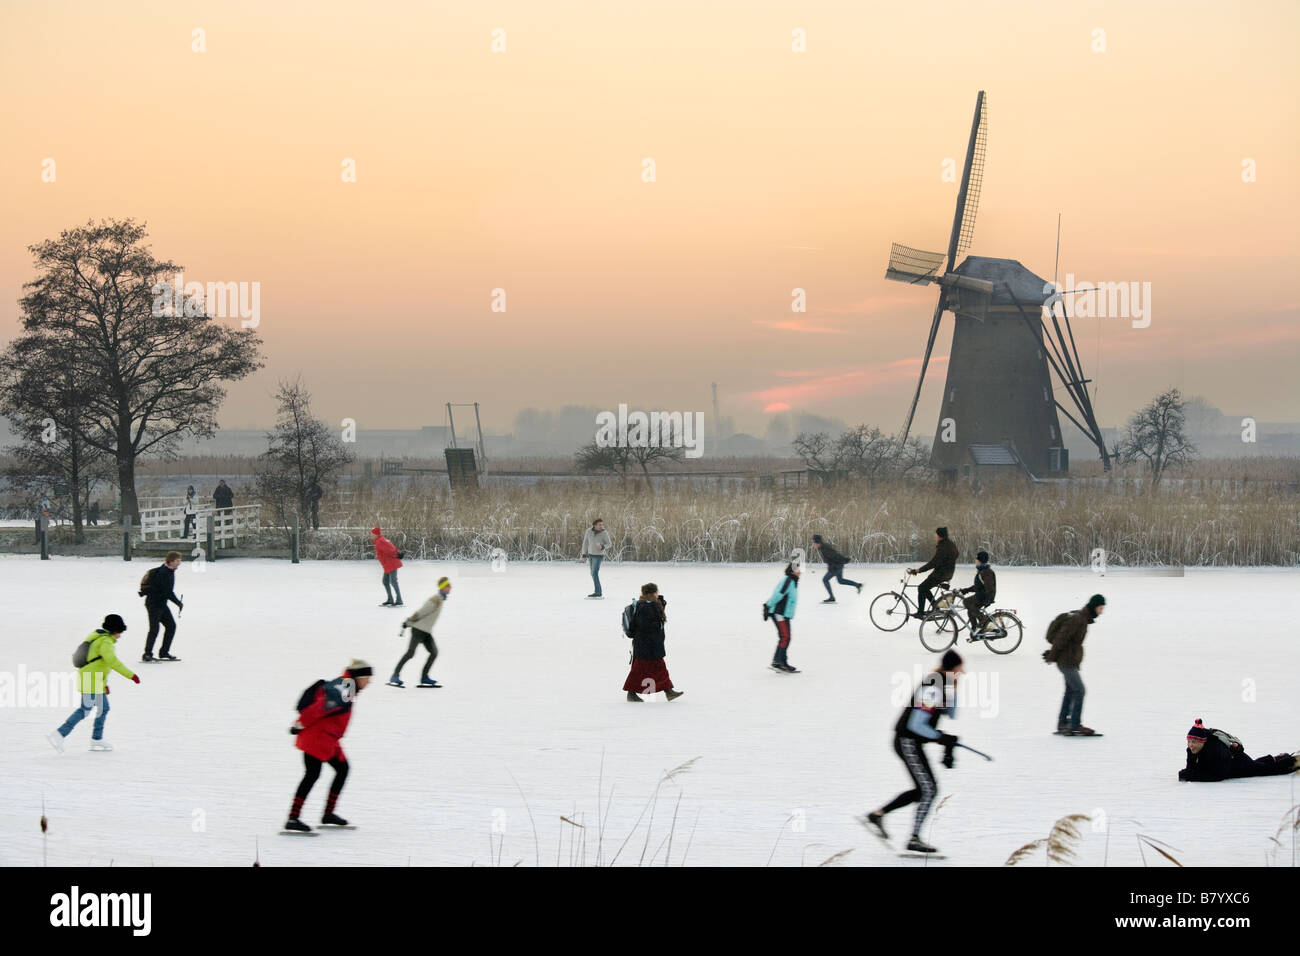 ice-skaters-and-even-cyclists-on-natural